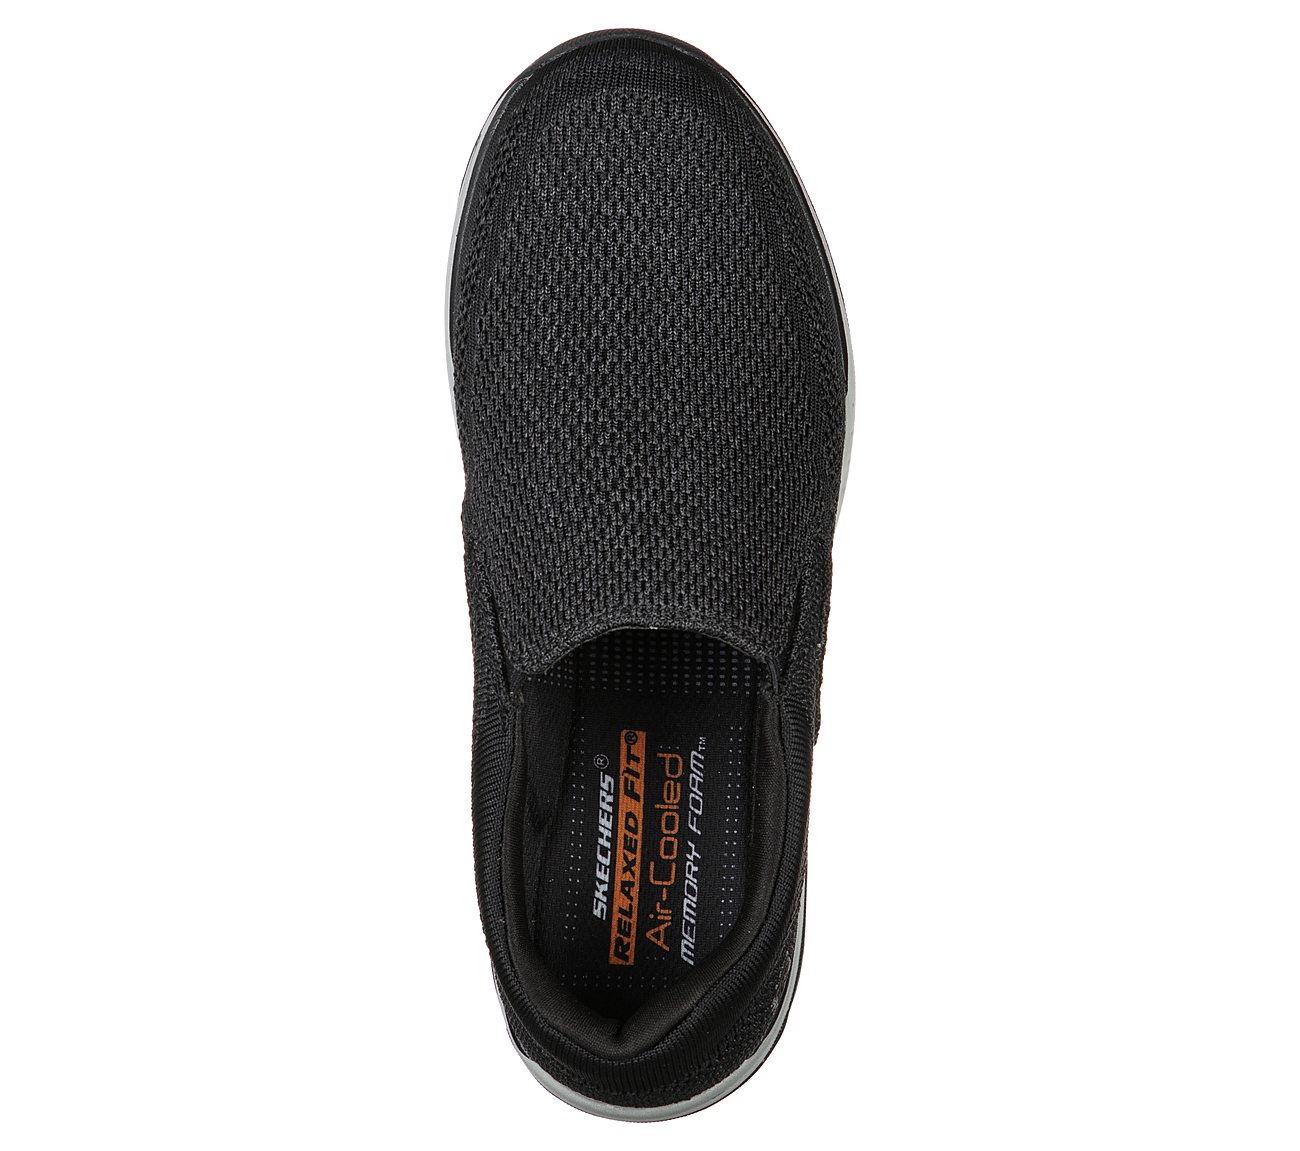 f6eb3e1b06e Buy SKECHERS Relaxed Fit  Expected - Gomel Relaxed Fit Shoes only  75.00